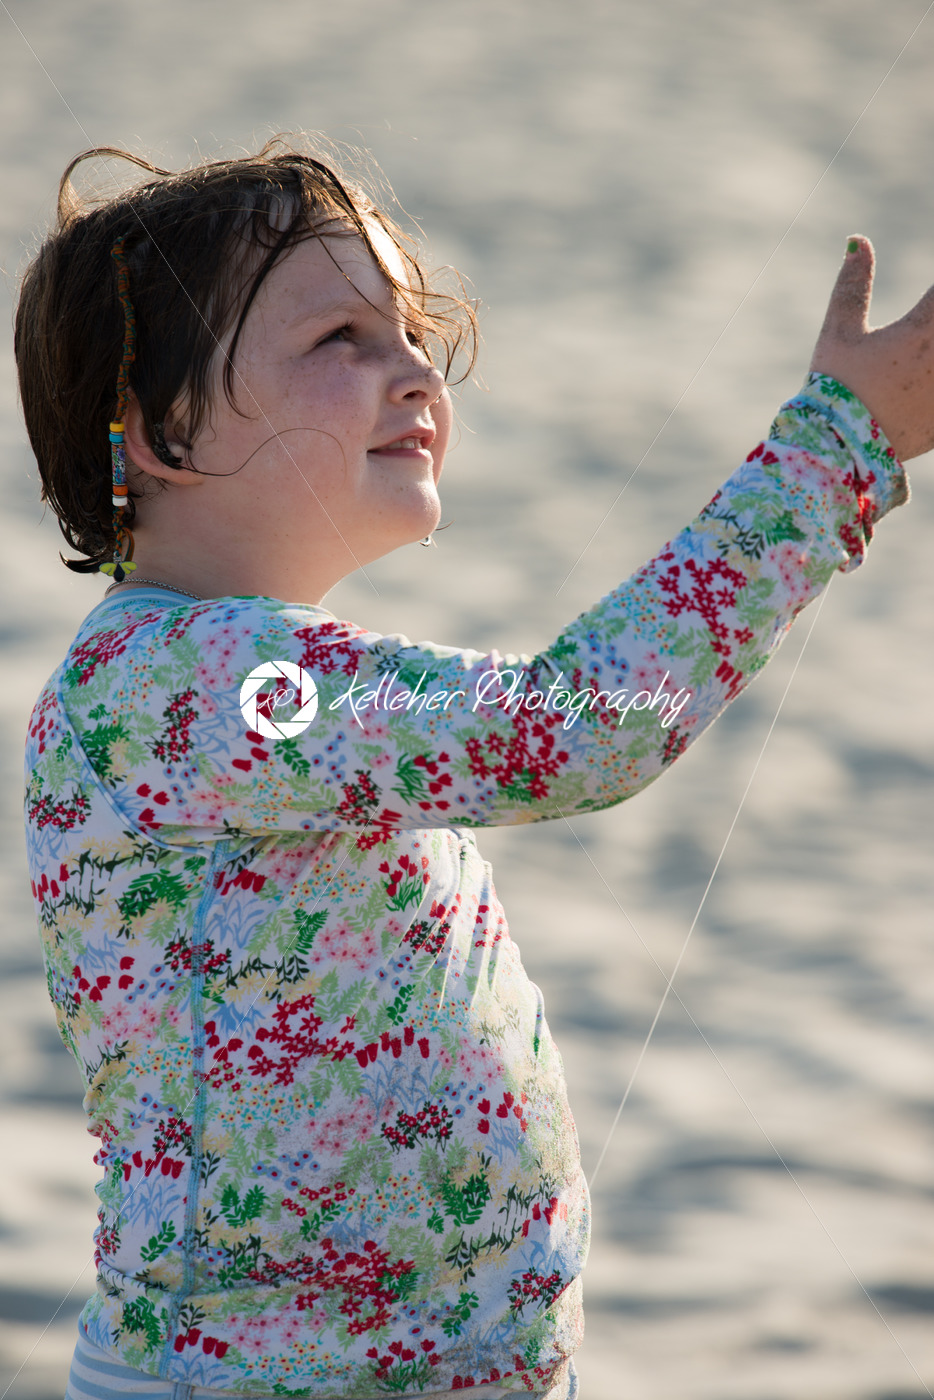 Young girl on beach with kite smiling - Kelleher Photography Store